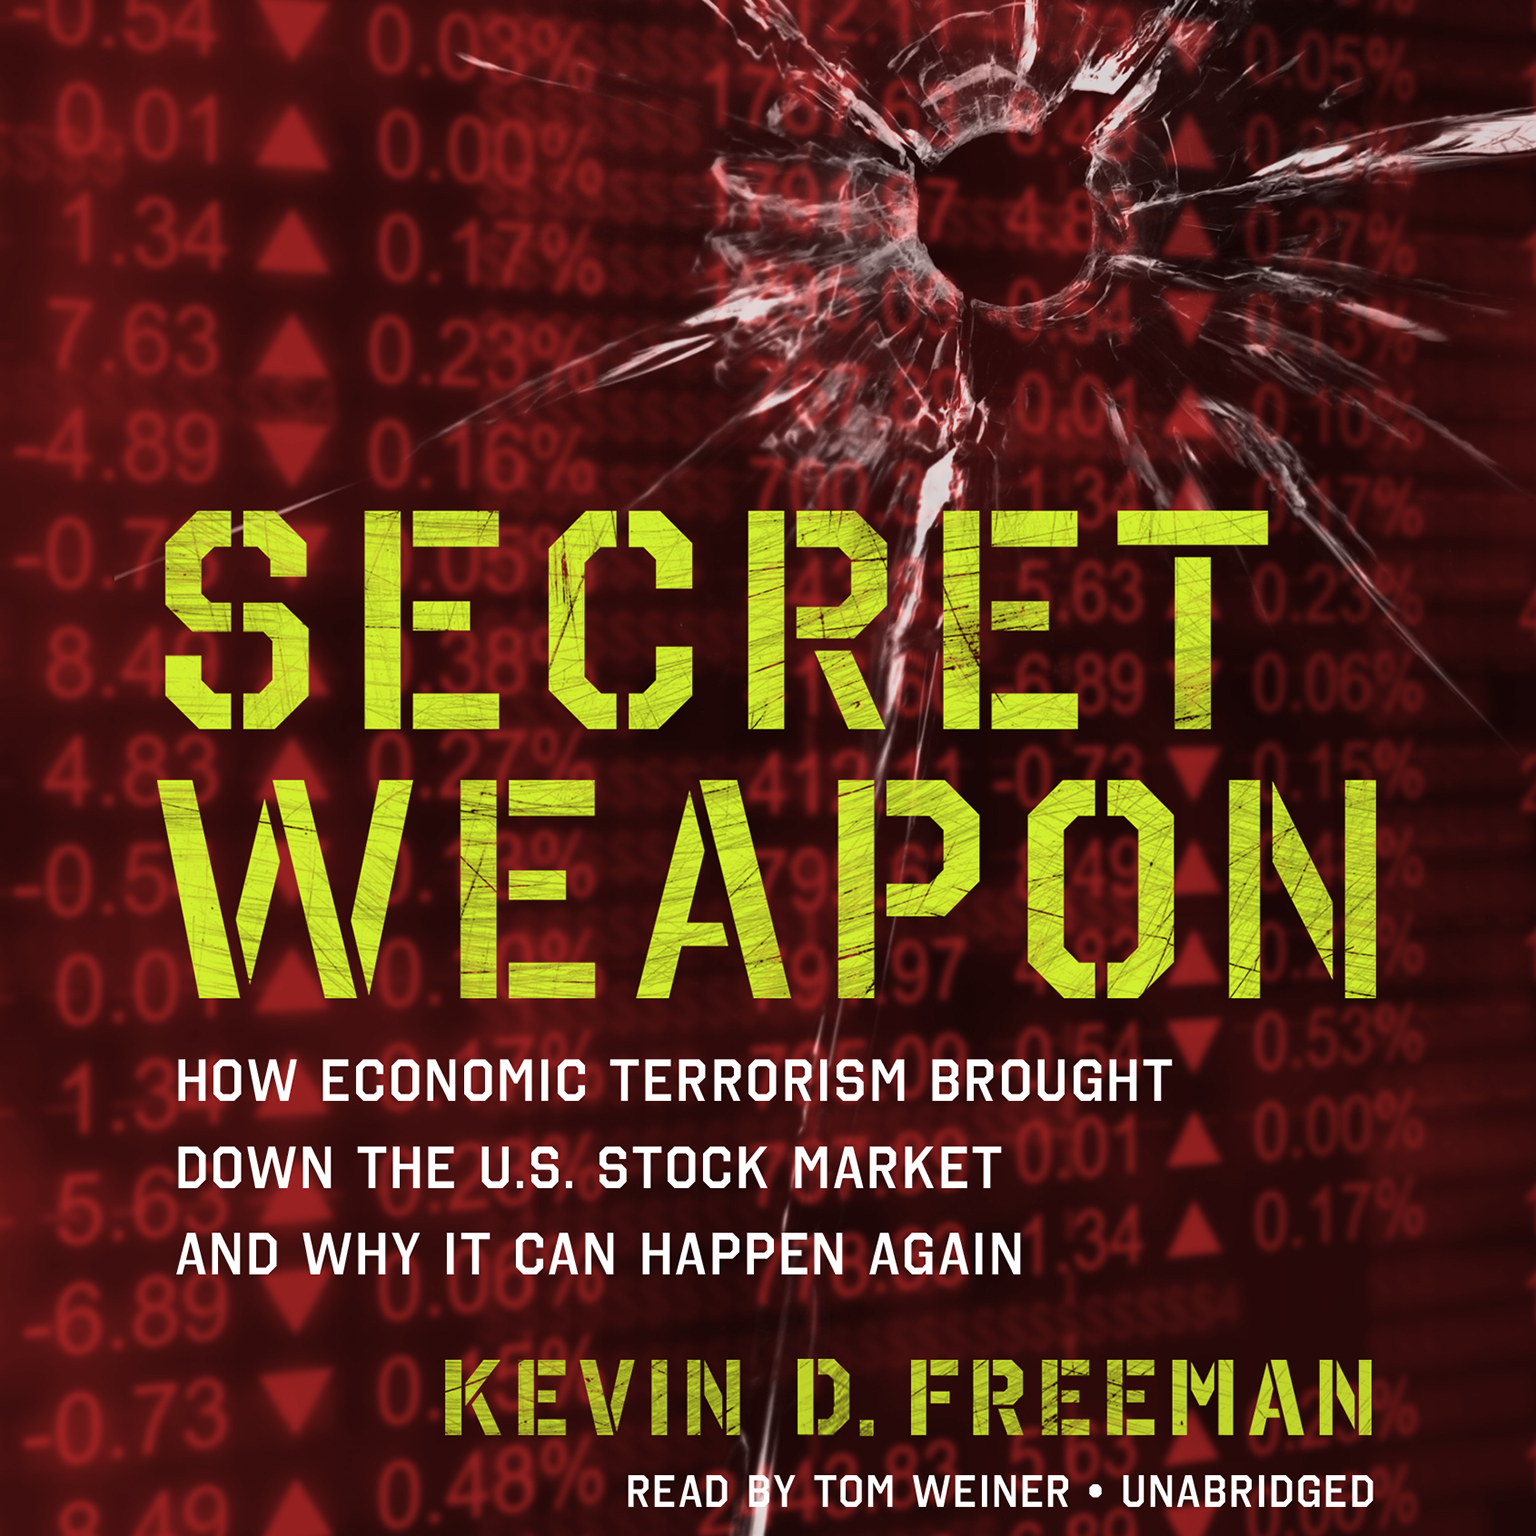 Printable Secret Weapon: How Economic Terrorism Brought Down the U.S. Stock Market and Why It Can Happen Again Audiobook Cover Art